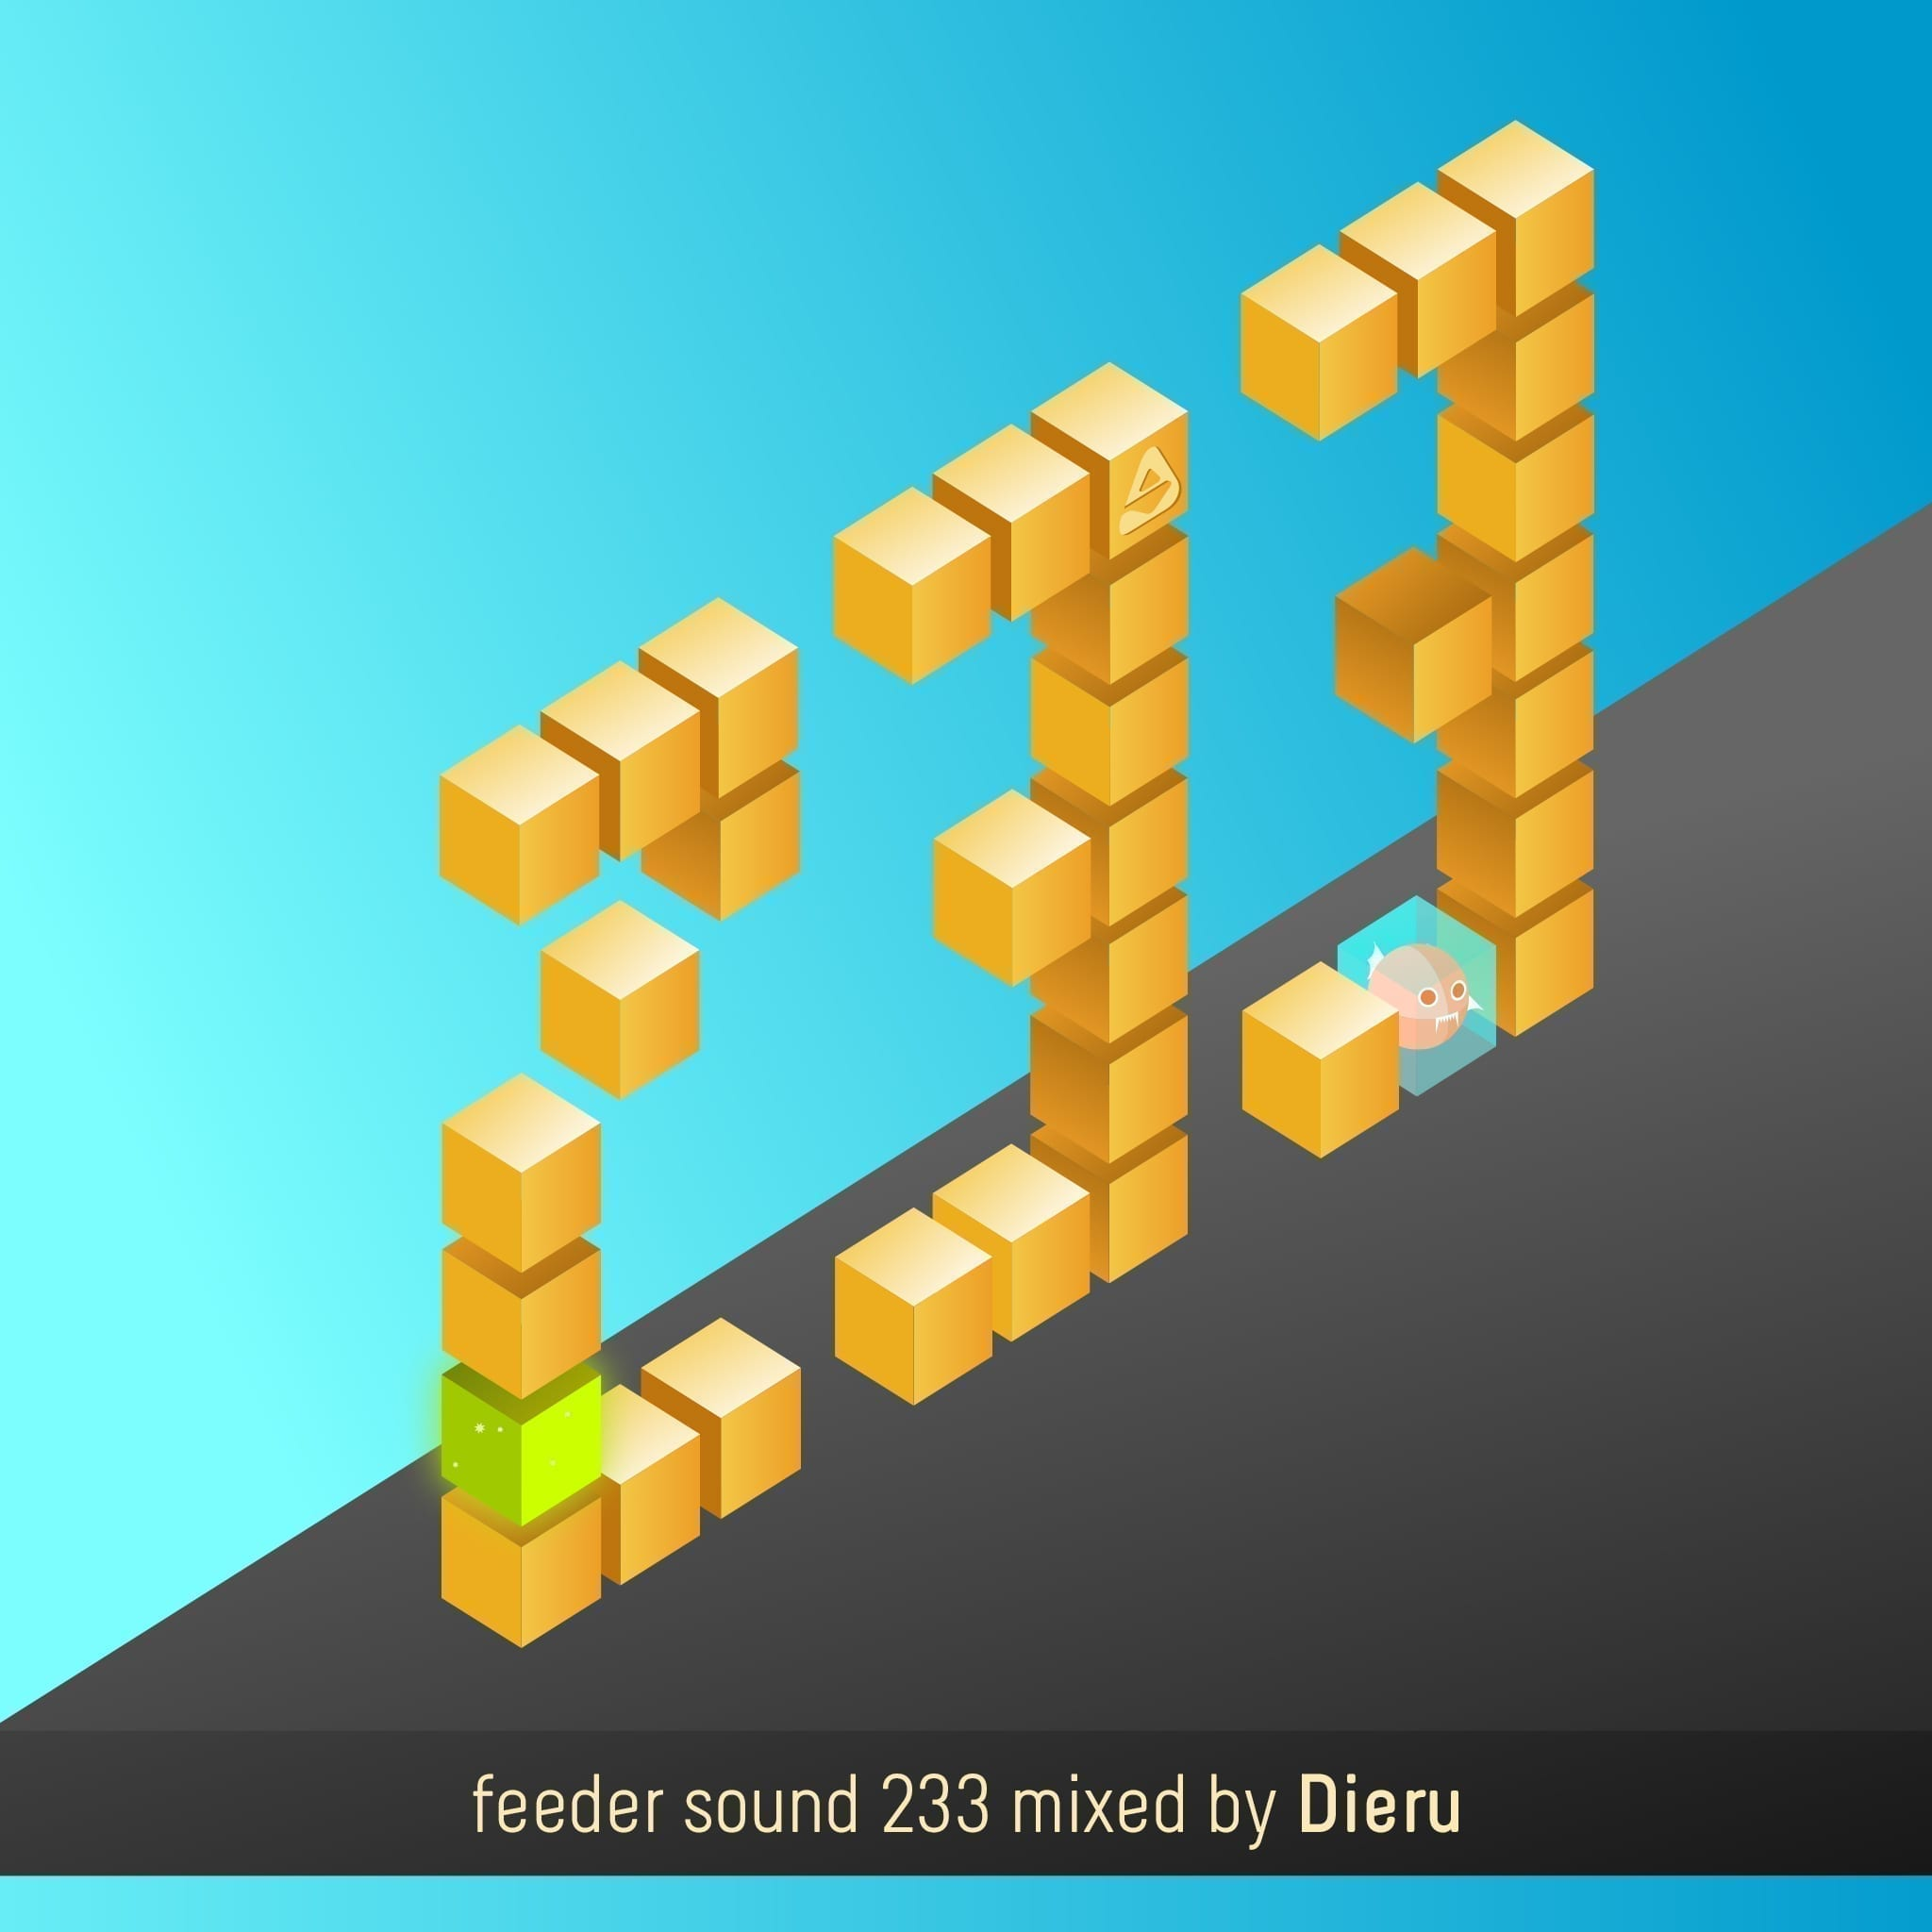 feeder sound 233 mixed by Dieru article-cover